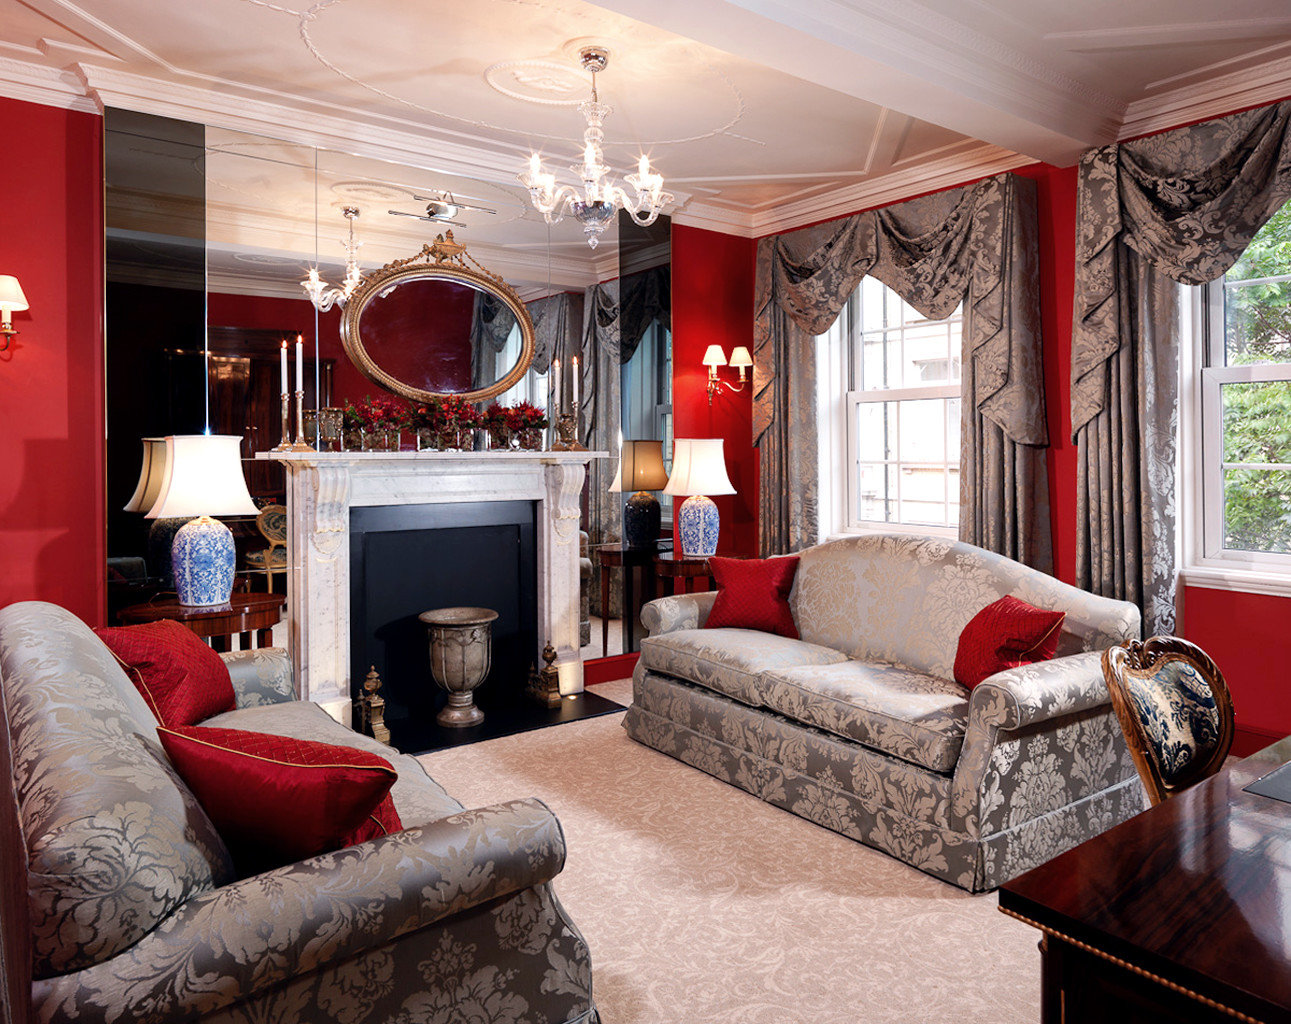 Elegant Hip Hotels Living London Lounge Luxury Luxury Travel sofa room indoor ceiling floor Fireplace furniture living room window property fire home estate interior design real estate decorated cottage Suite area stone flat leather